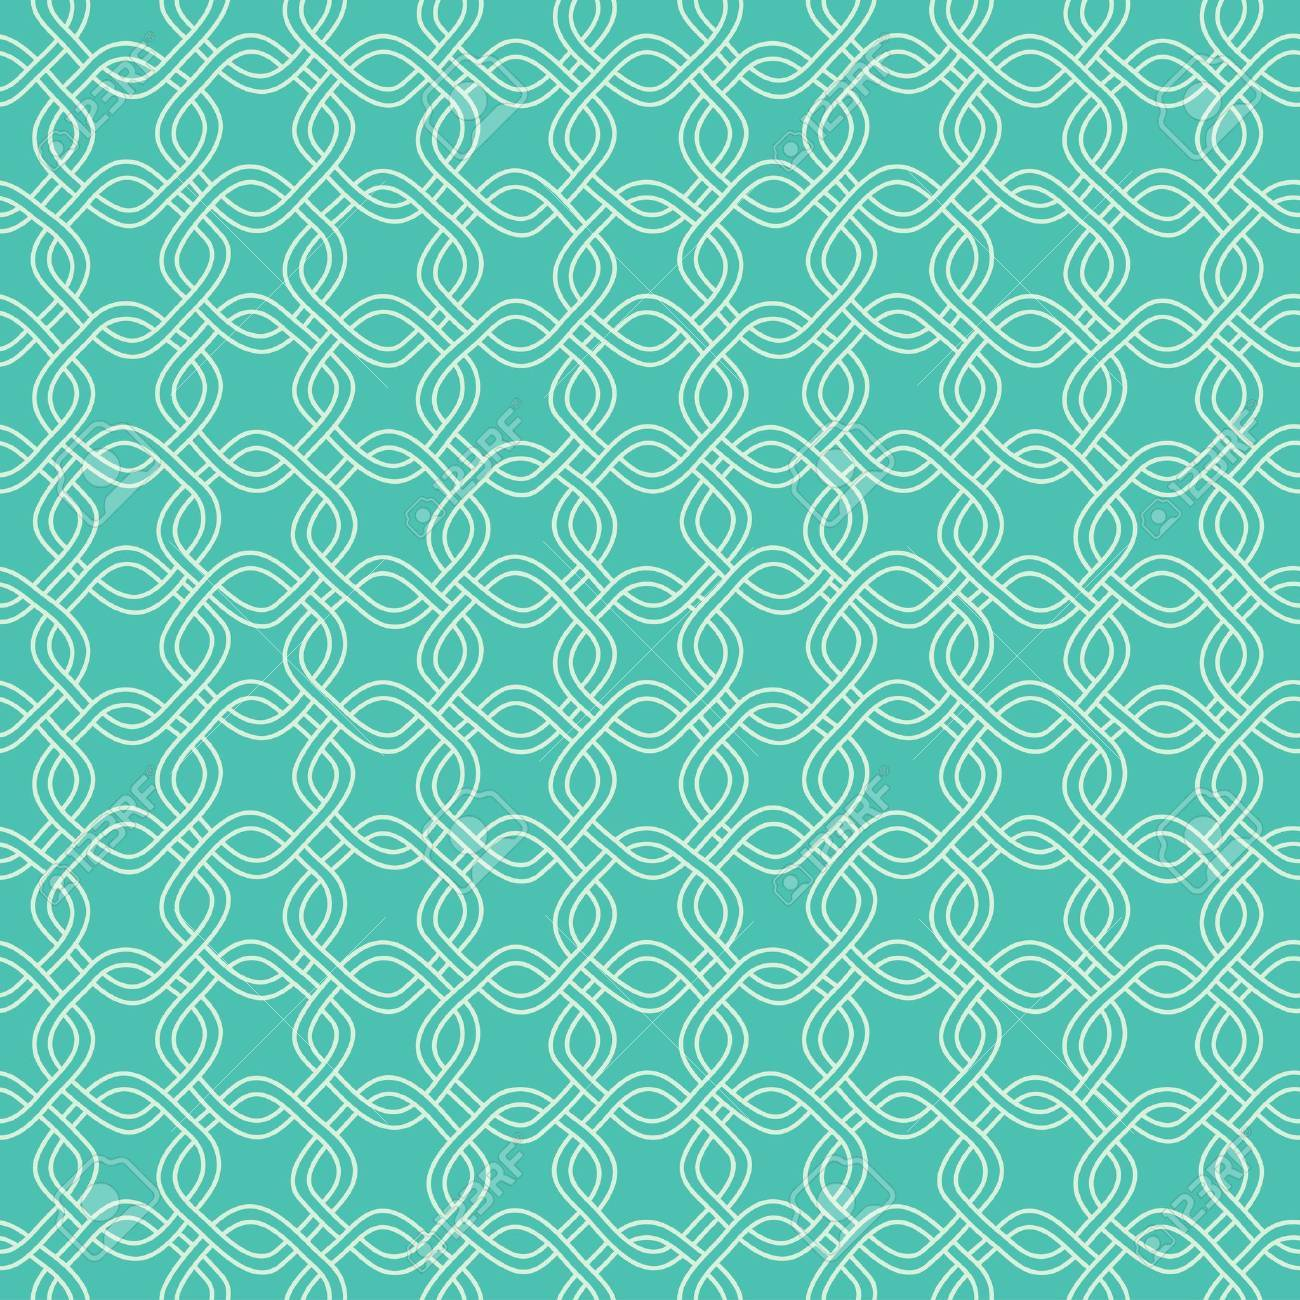 Seamless hand drawn pattern with chains  Vector Stock Photo - 18534612